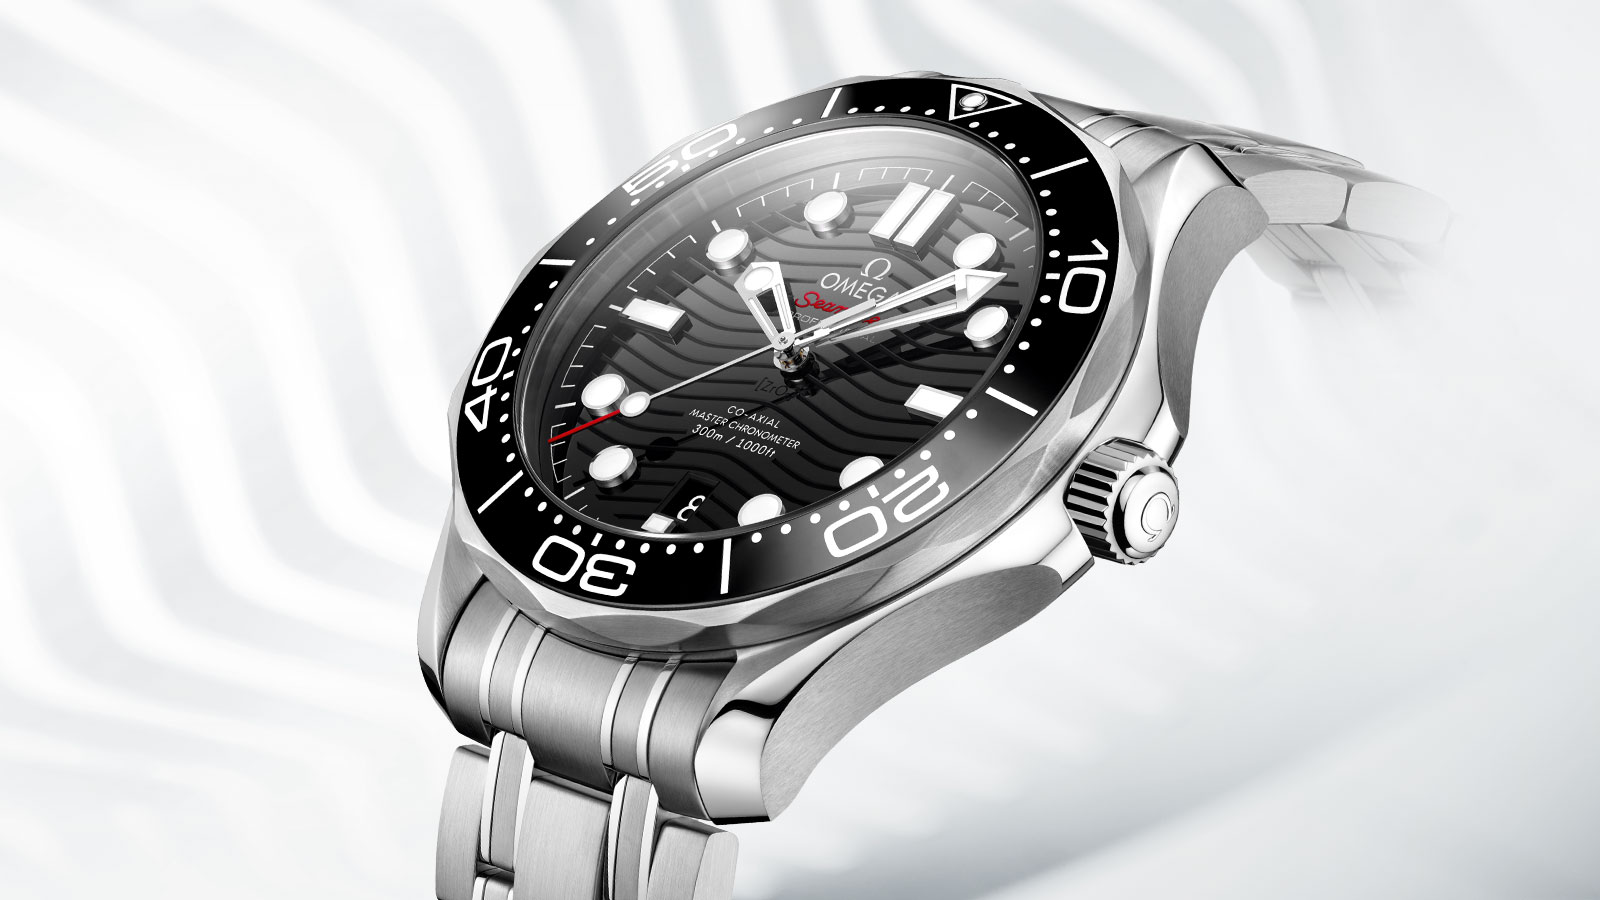 Diver 300m in stainless steel with a black dial and bezel